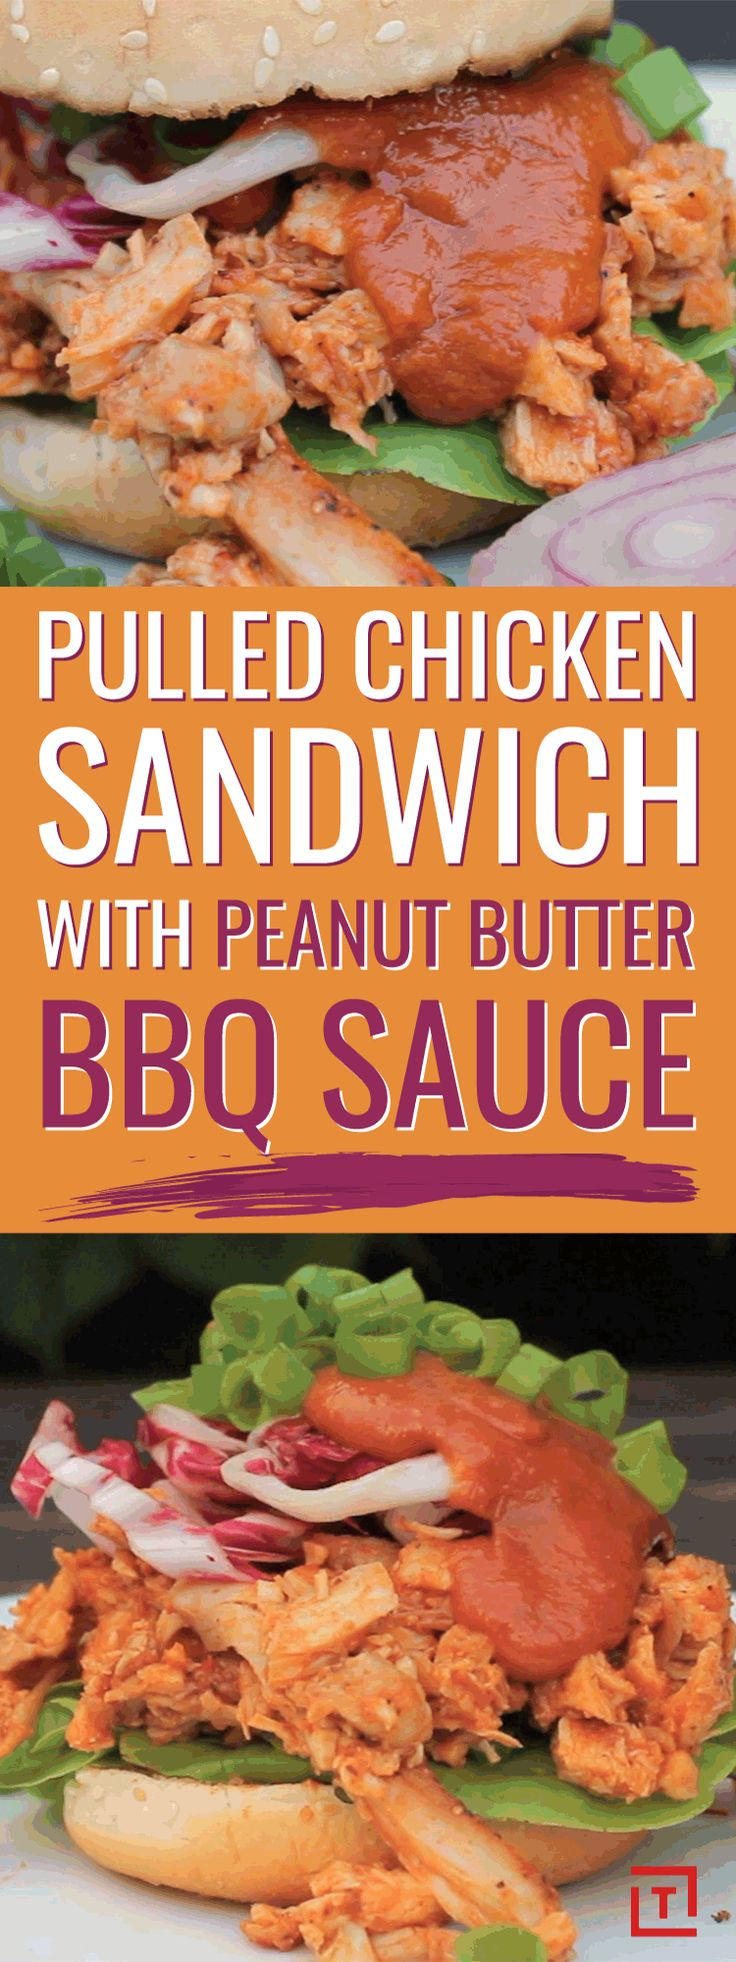 Dinner's a no-brainer thanks to this pulled chicken with homemade peanut butter BBQ sauce. Throw it on a bun and top with lettuce, red cabbage, red onion, spring onions, and more peanut butter BBQ sauce for a chicken dinner that's anything but ordinary.